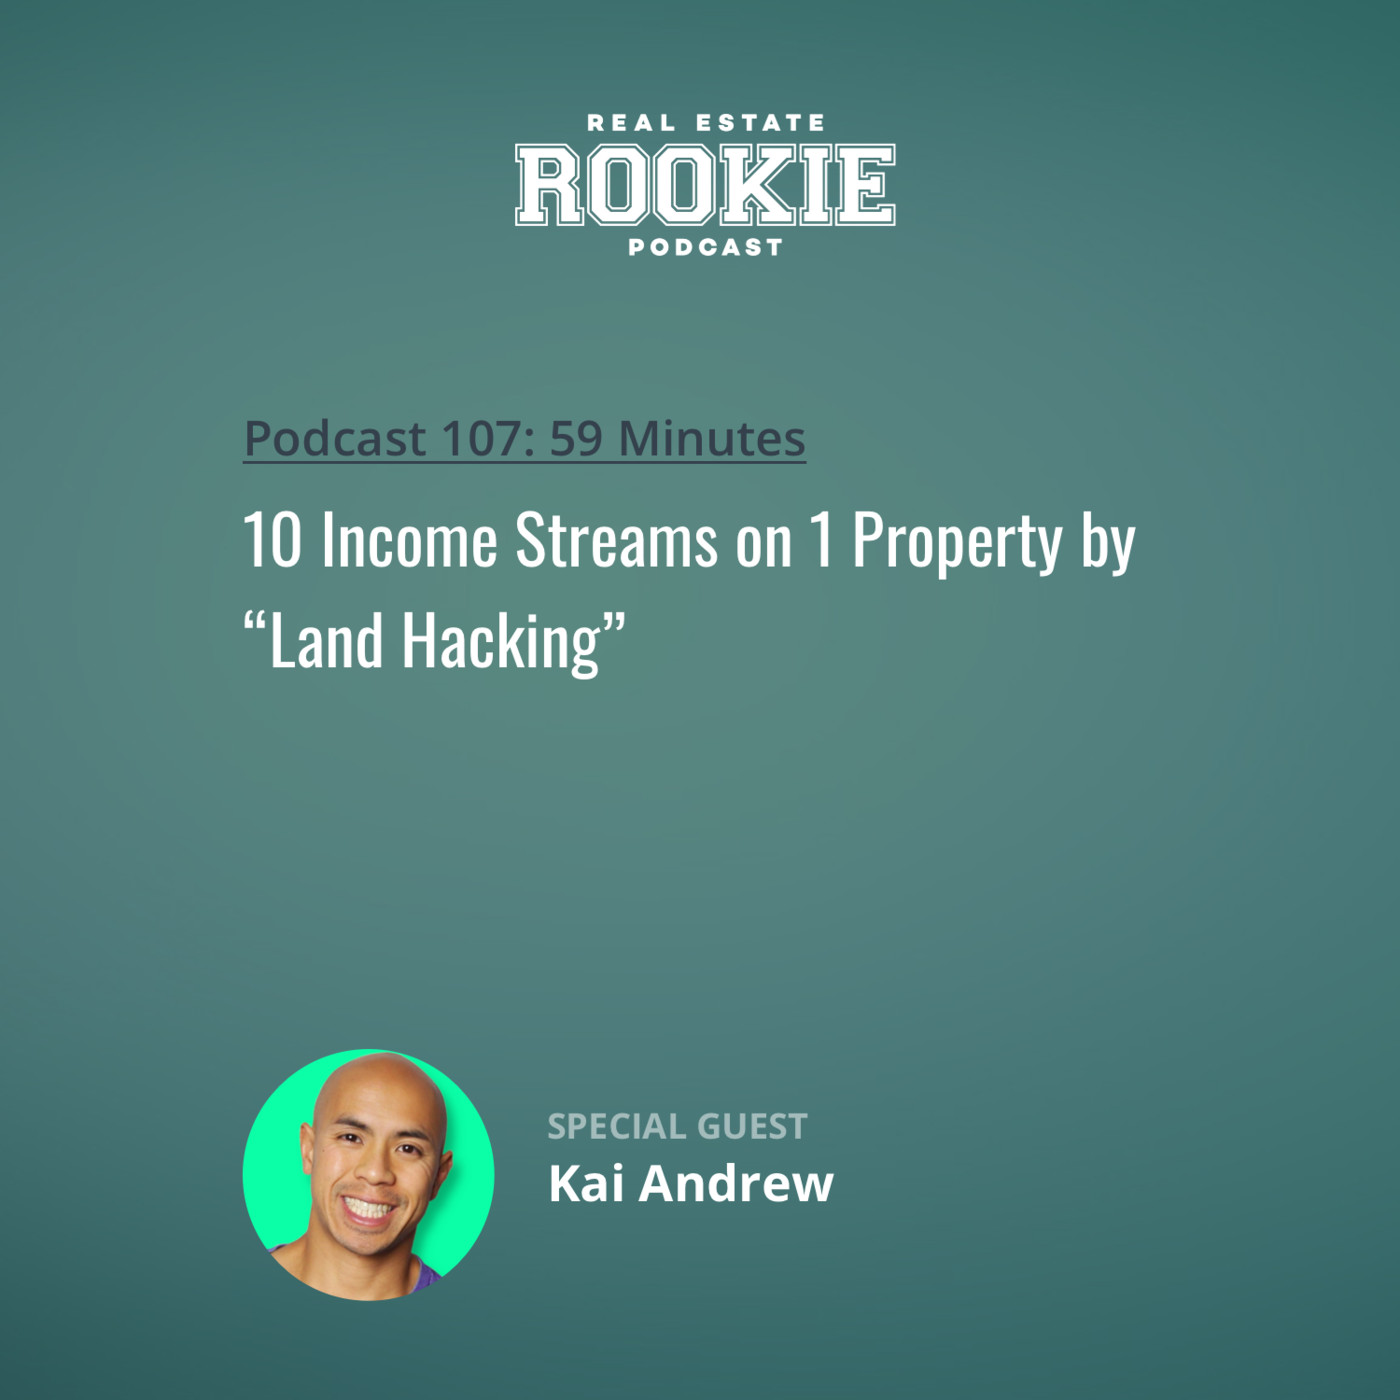 """10 Income Streams on 1 Property by """"Land Hacking"""" w/ Kai Andrew"""